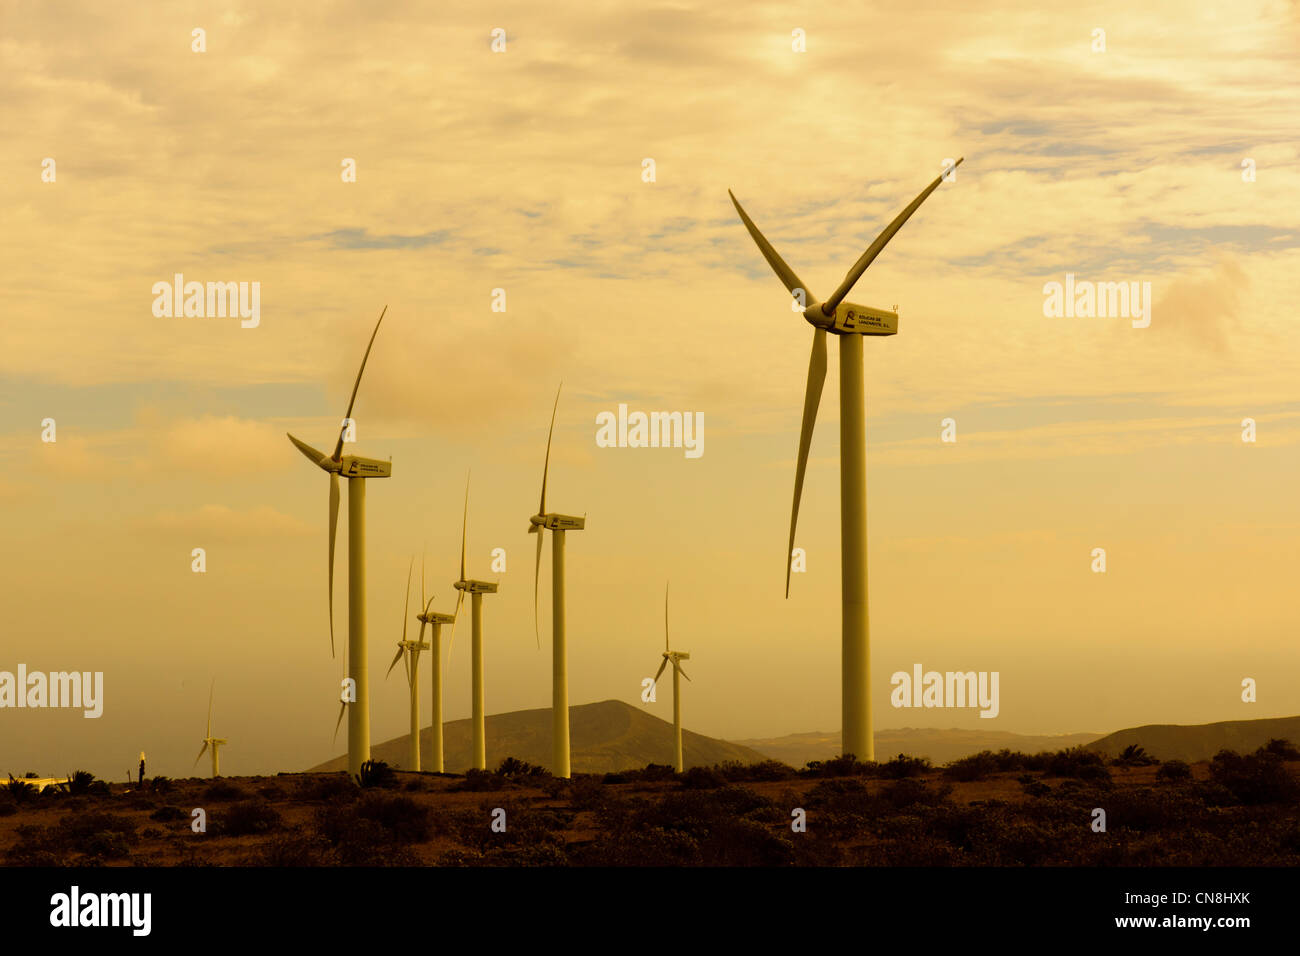 Eolicas de Lanzarote, SL. Power generation wind farm on high ridge to north west of island between Teguise and Haria. - Stock Image